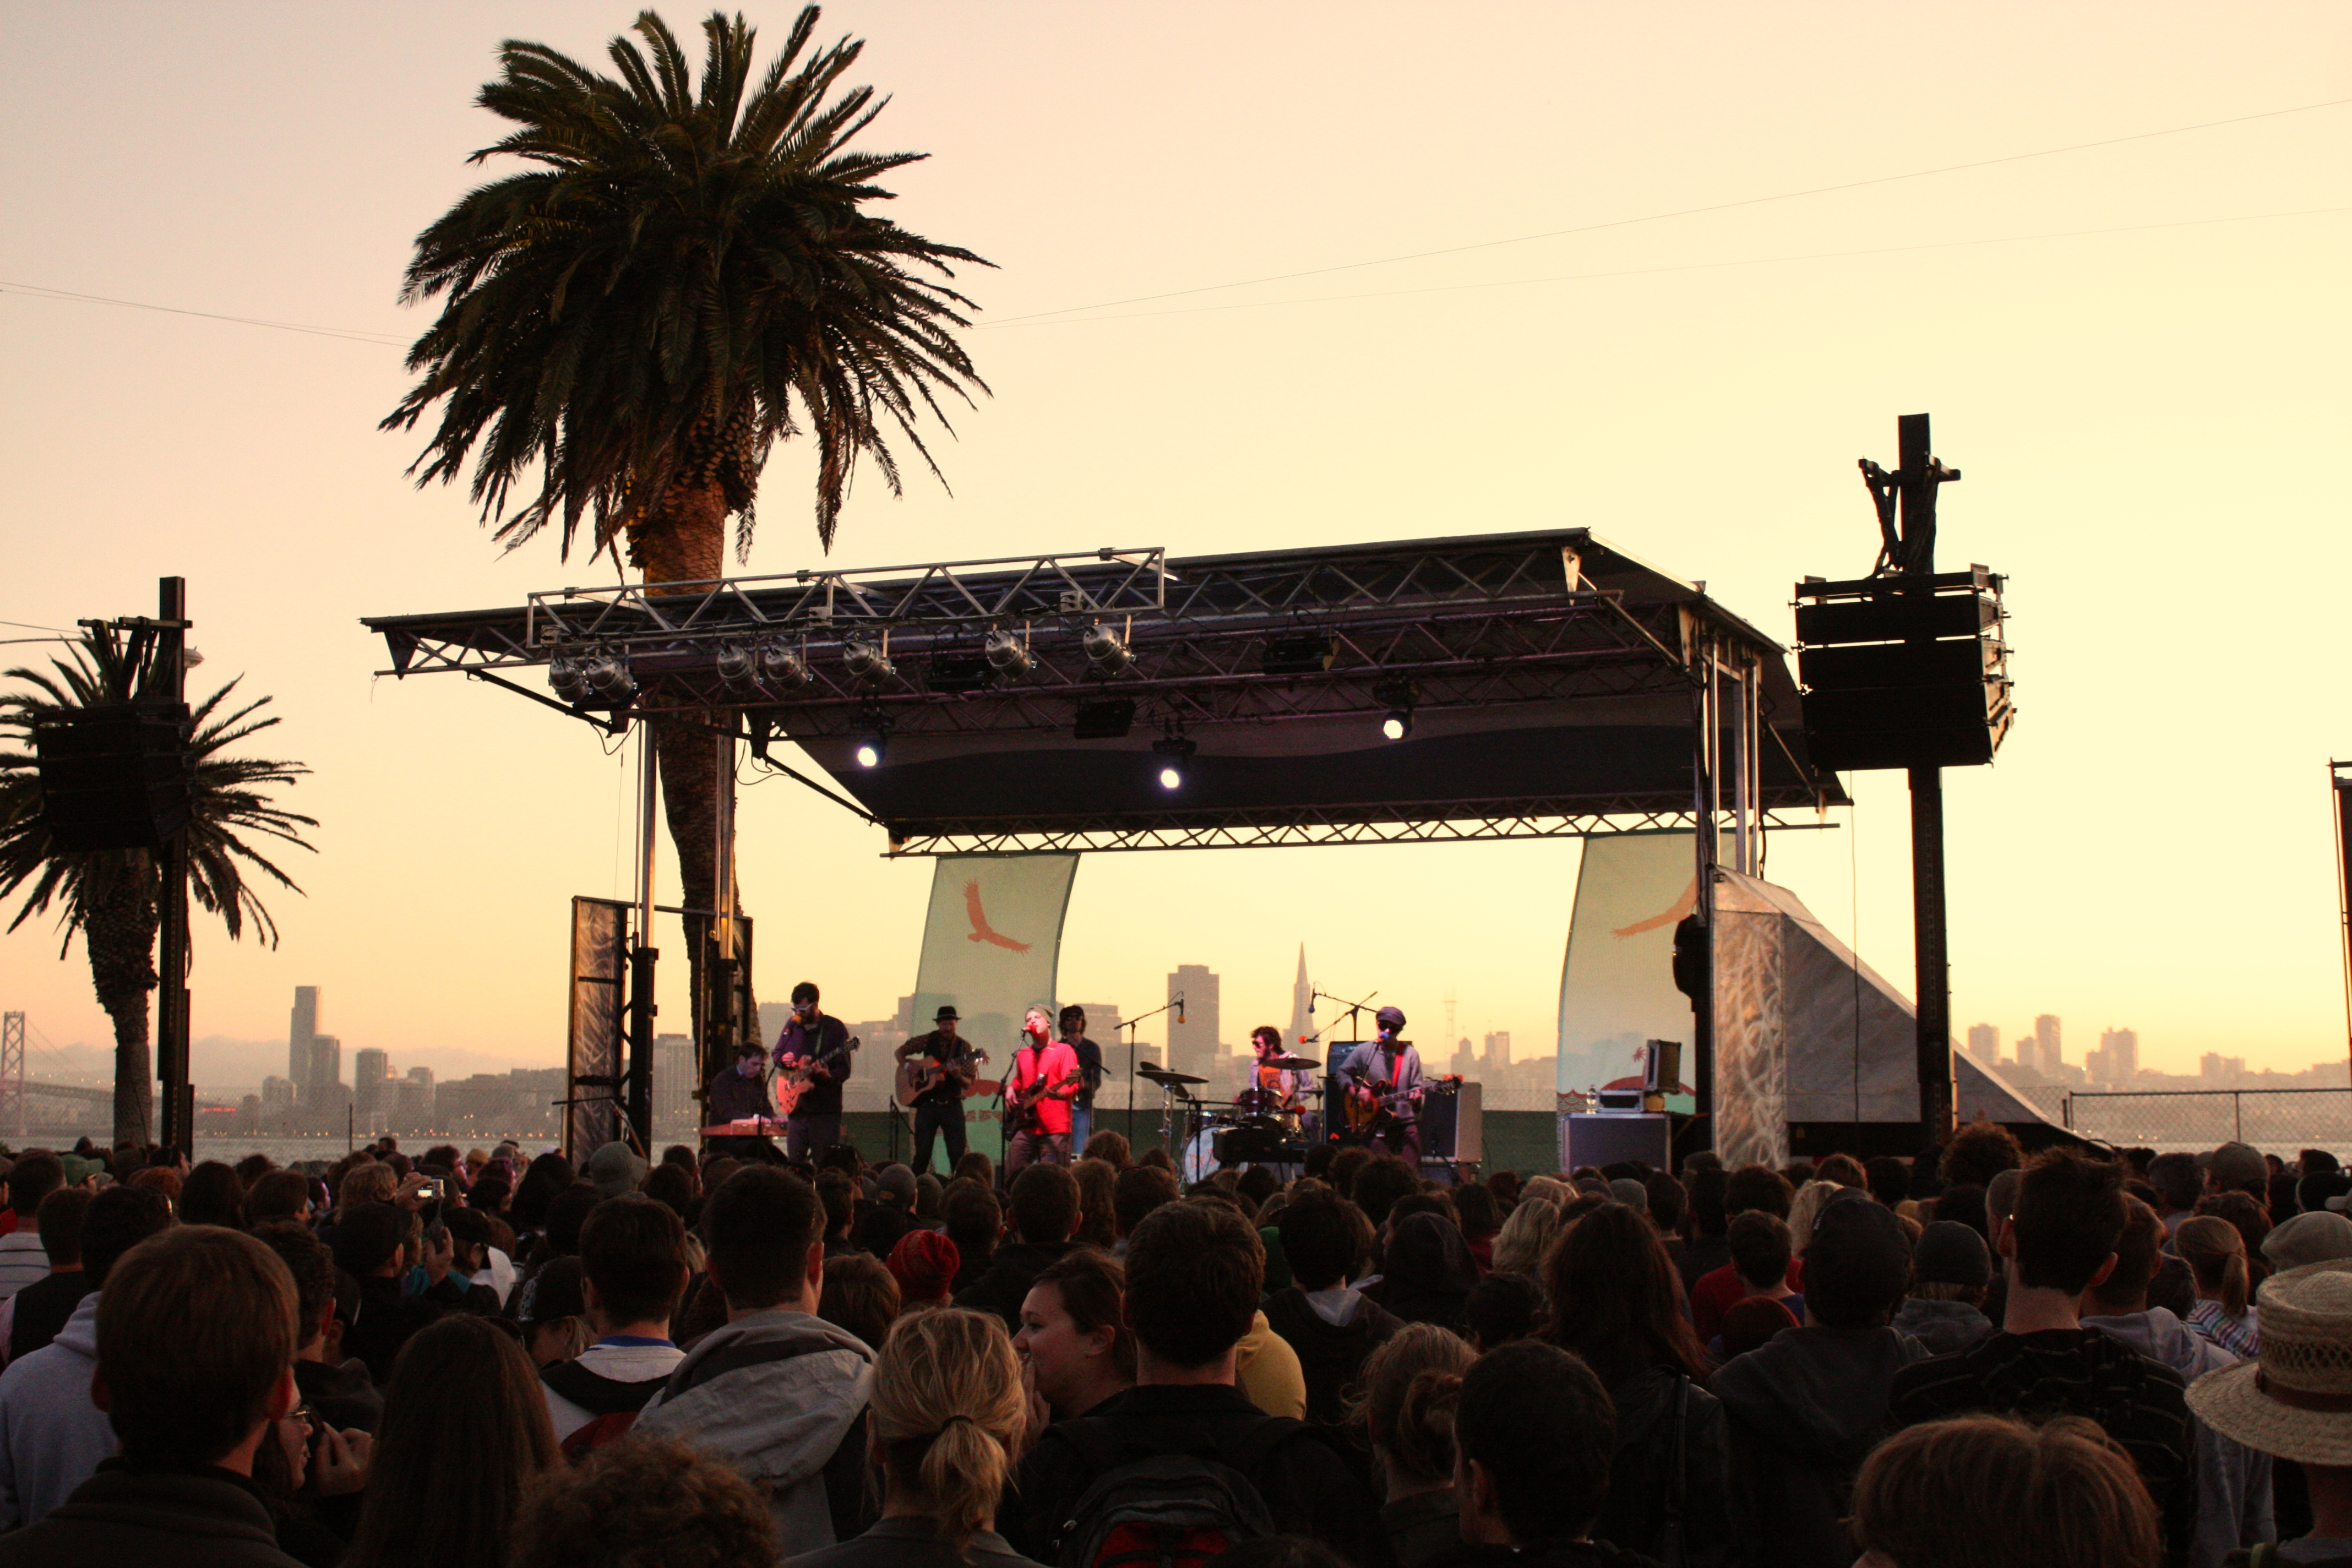 A band playing onstage at Treasure Island, with the San Francisco skyline silhouetted in the sunset behind them.